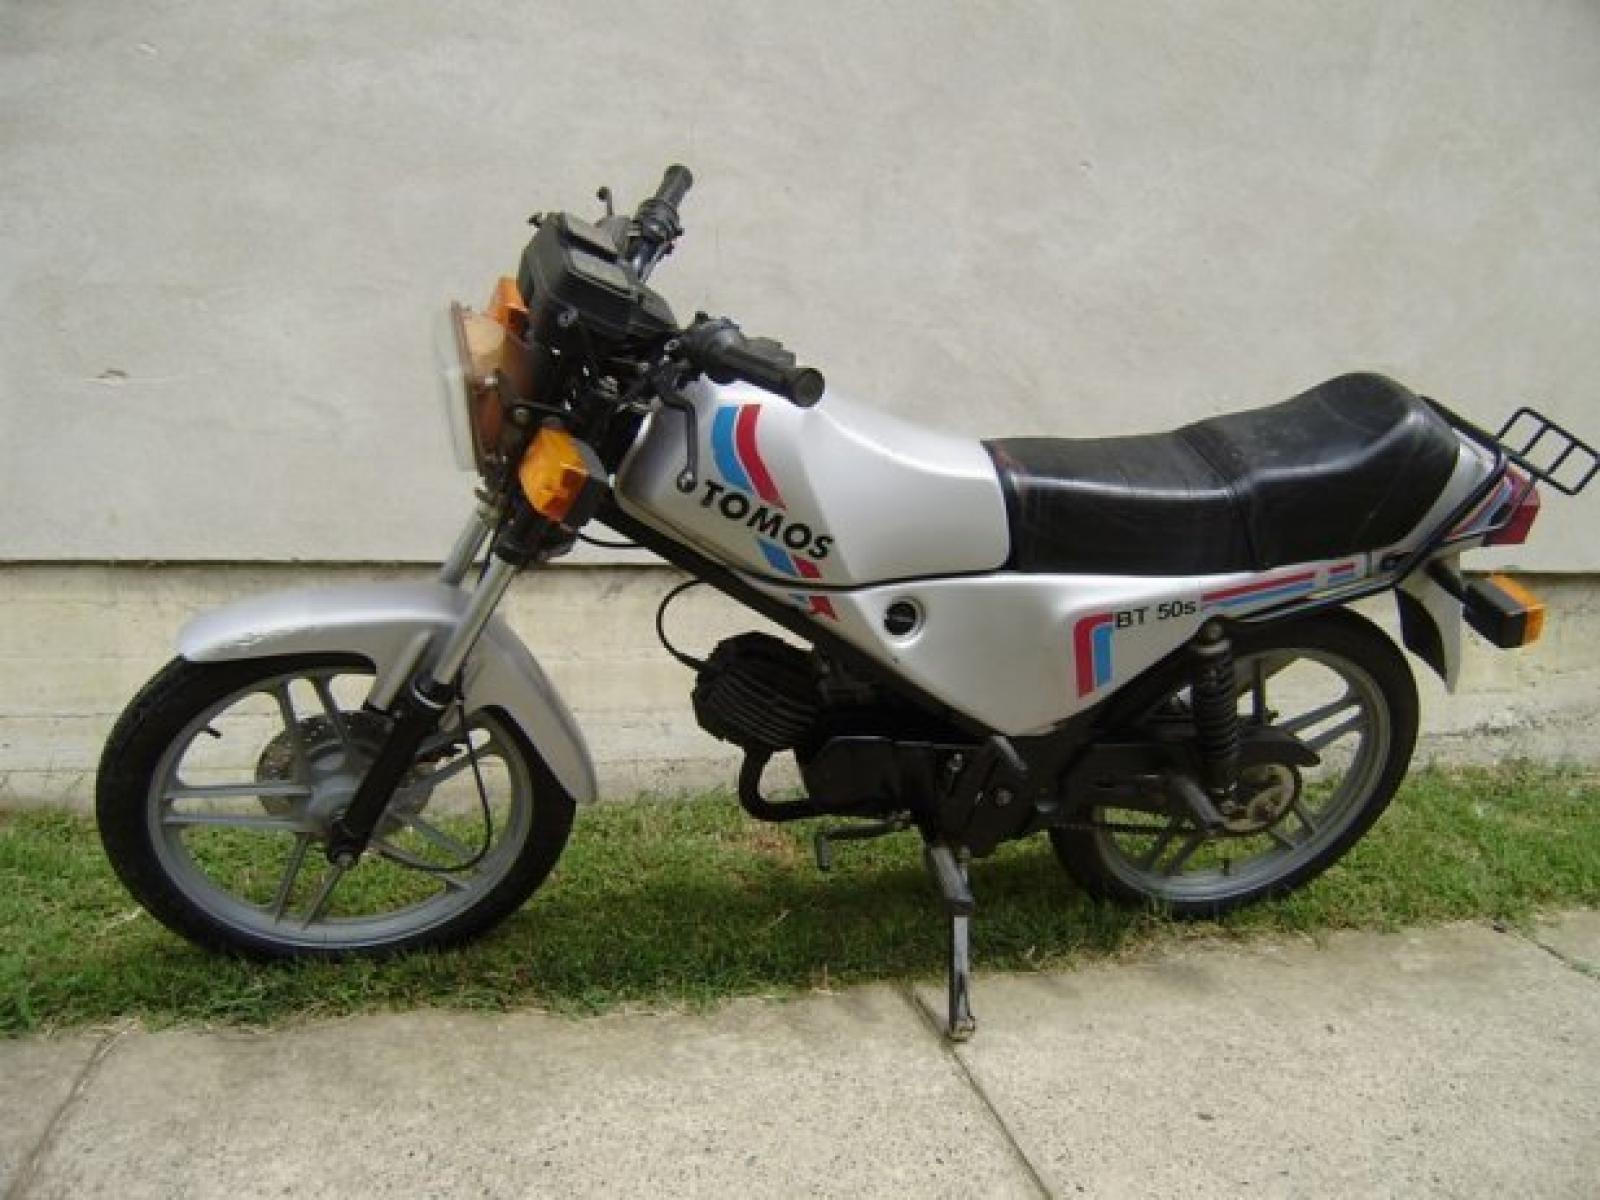 Tomos bt-50 photo - 3